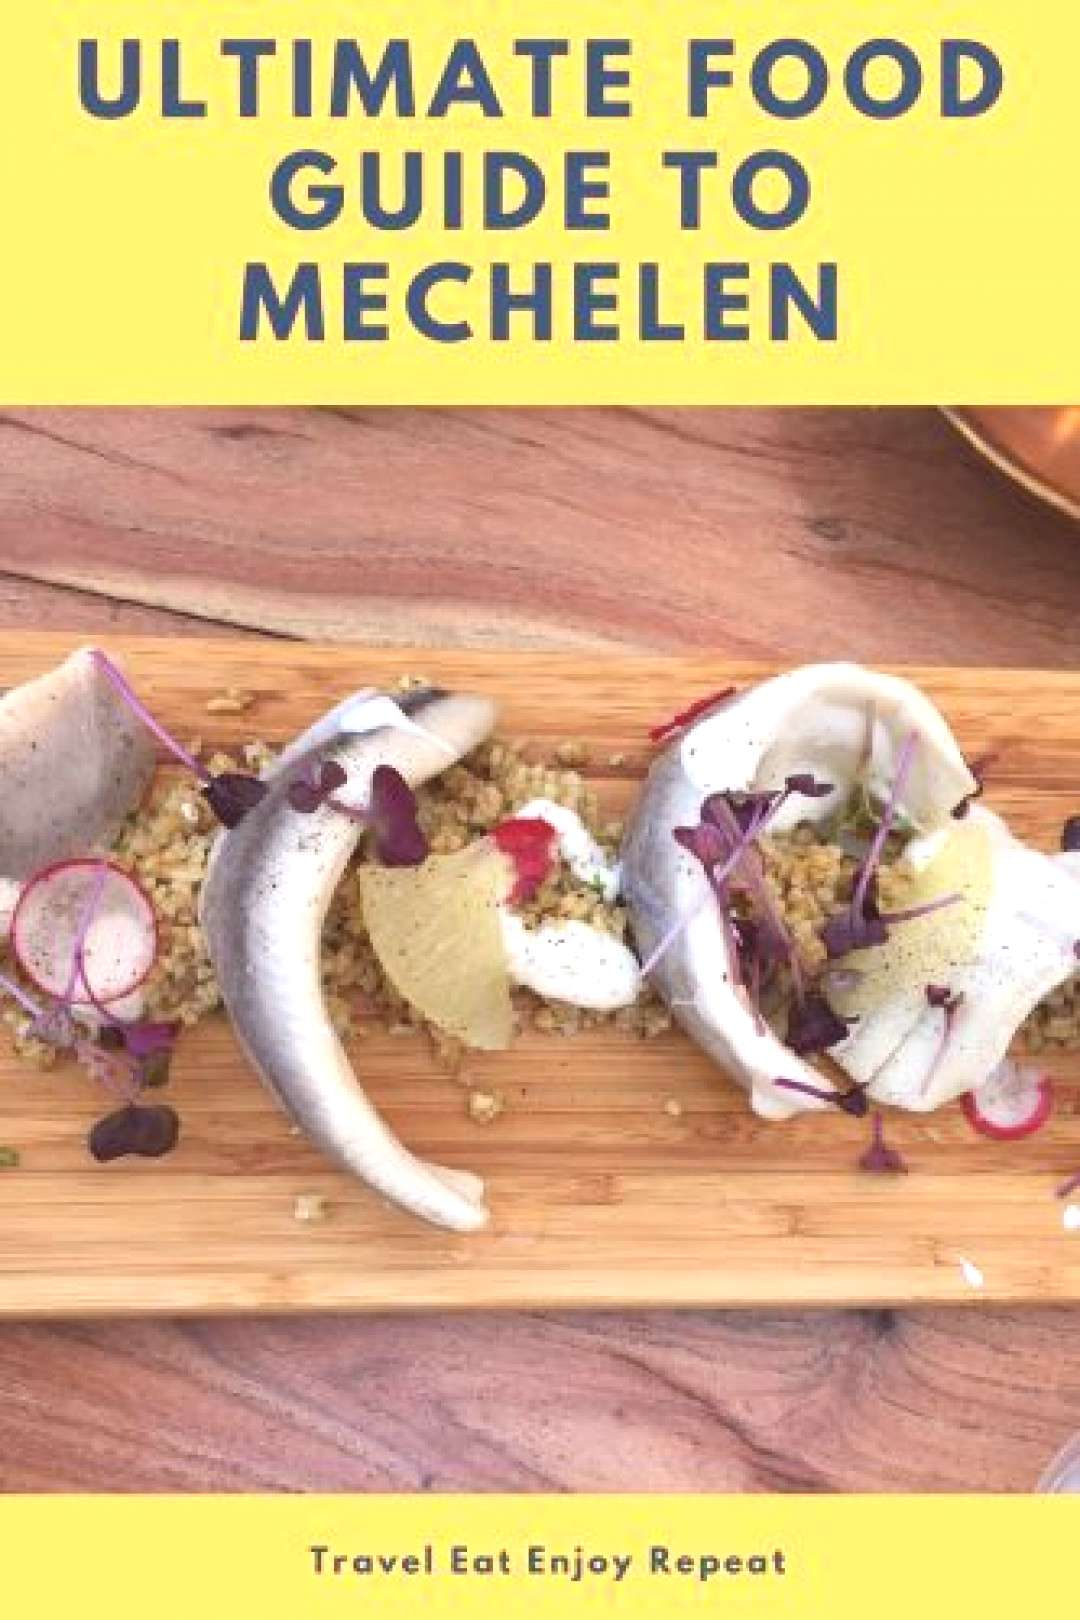 Where to eat and drink in Mechelen - Travel Eat Enjoy Repeat Where to eat and drink in Mechelen (Be